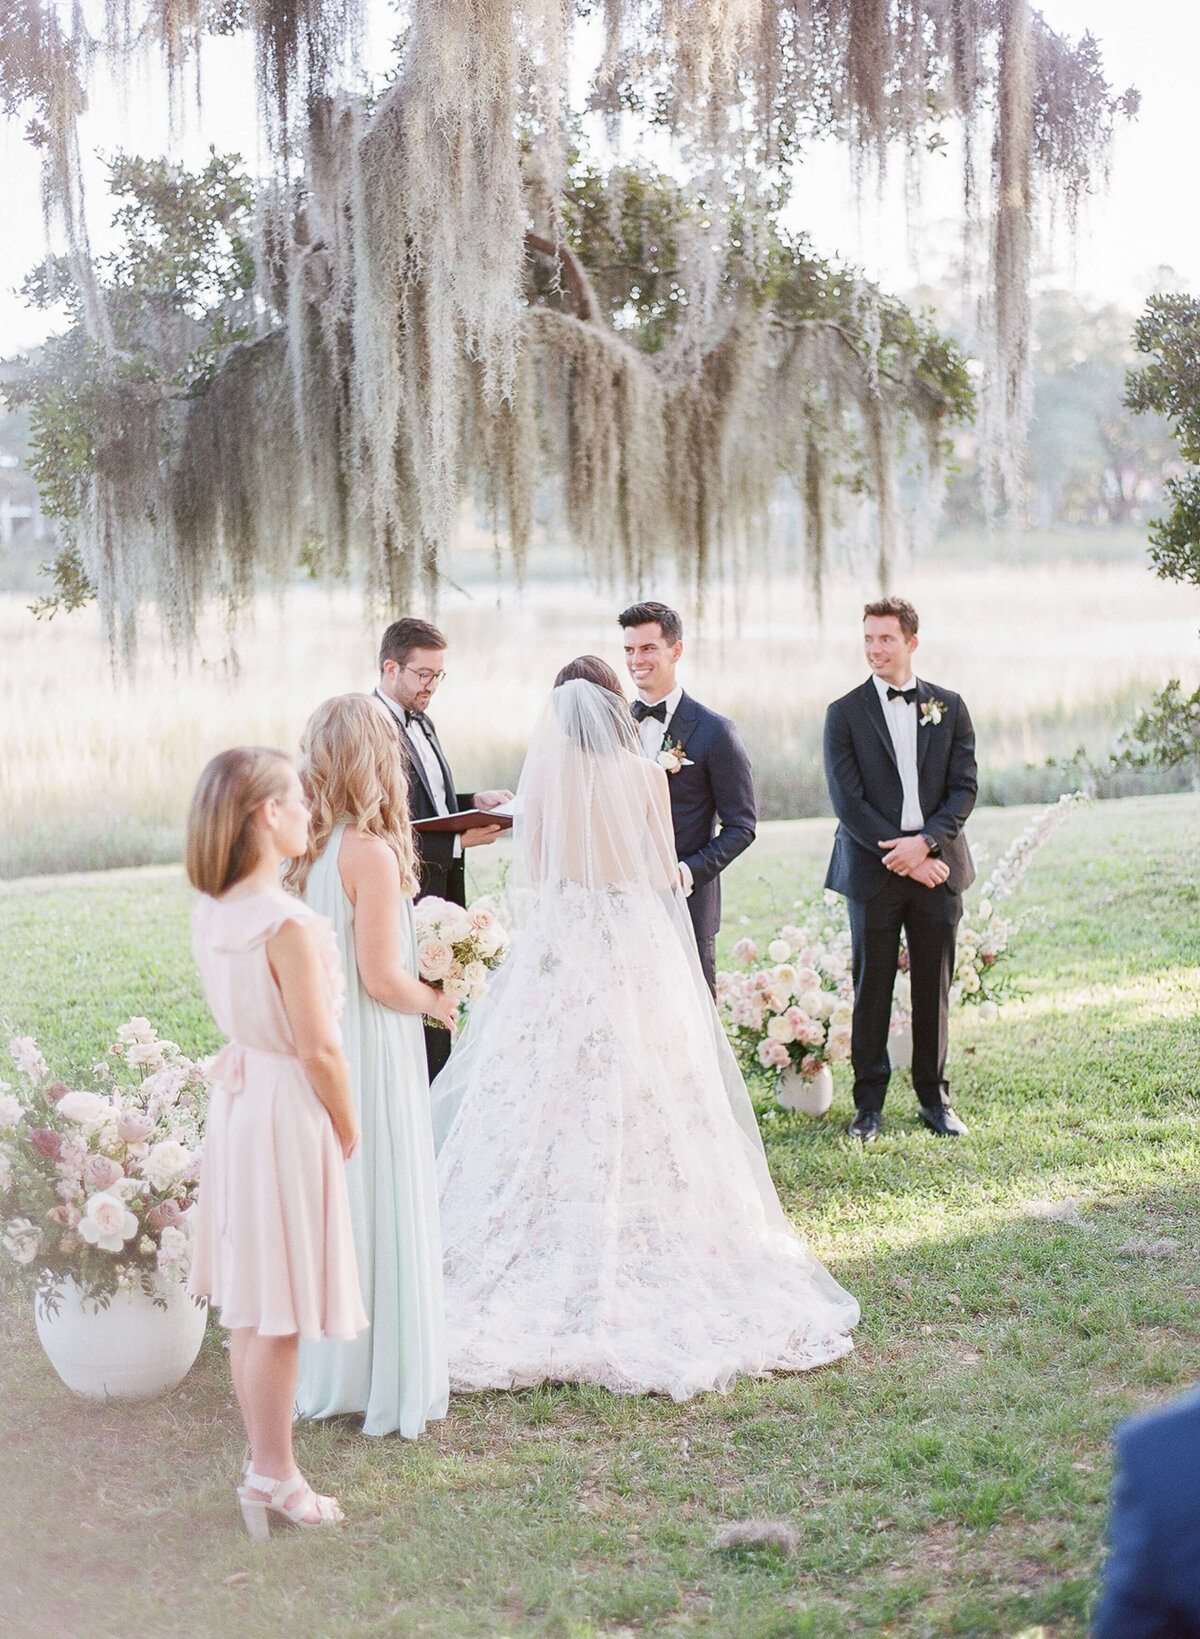 kiawah-river-wedding-clay-austin-photography-58